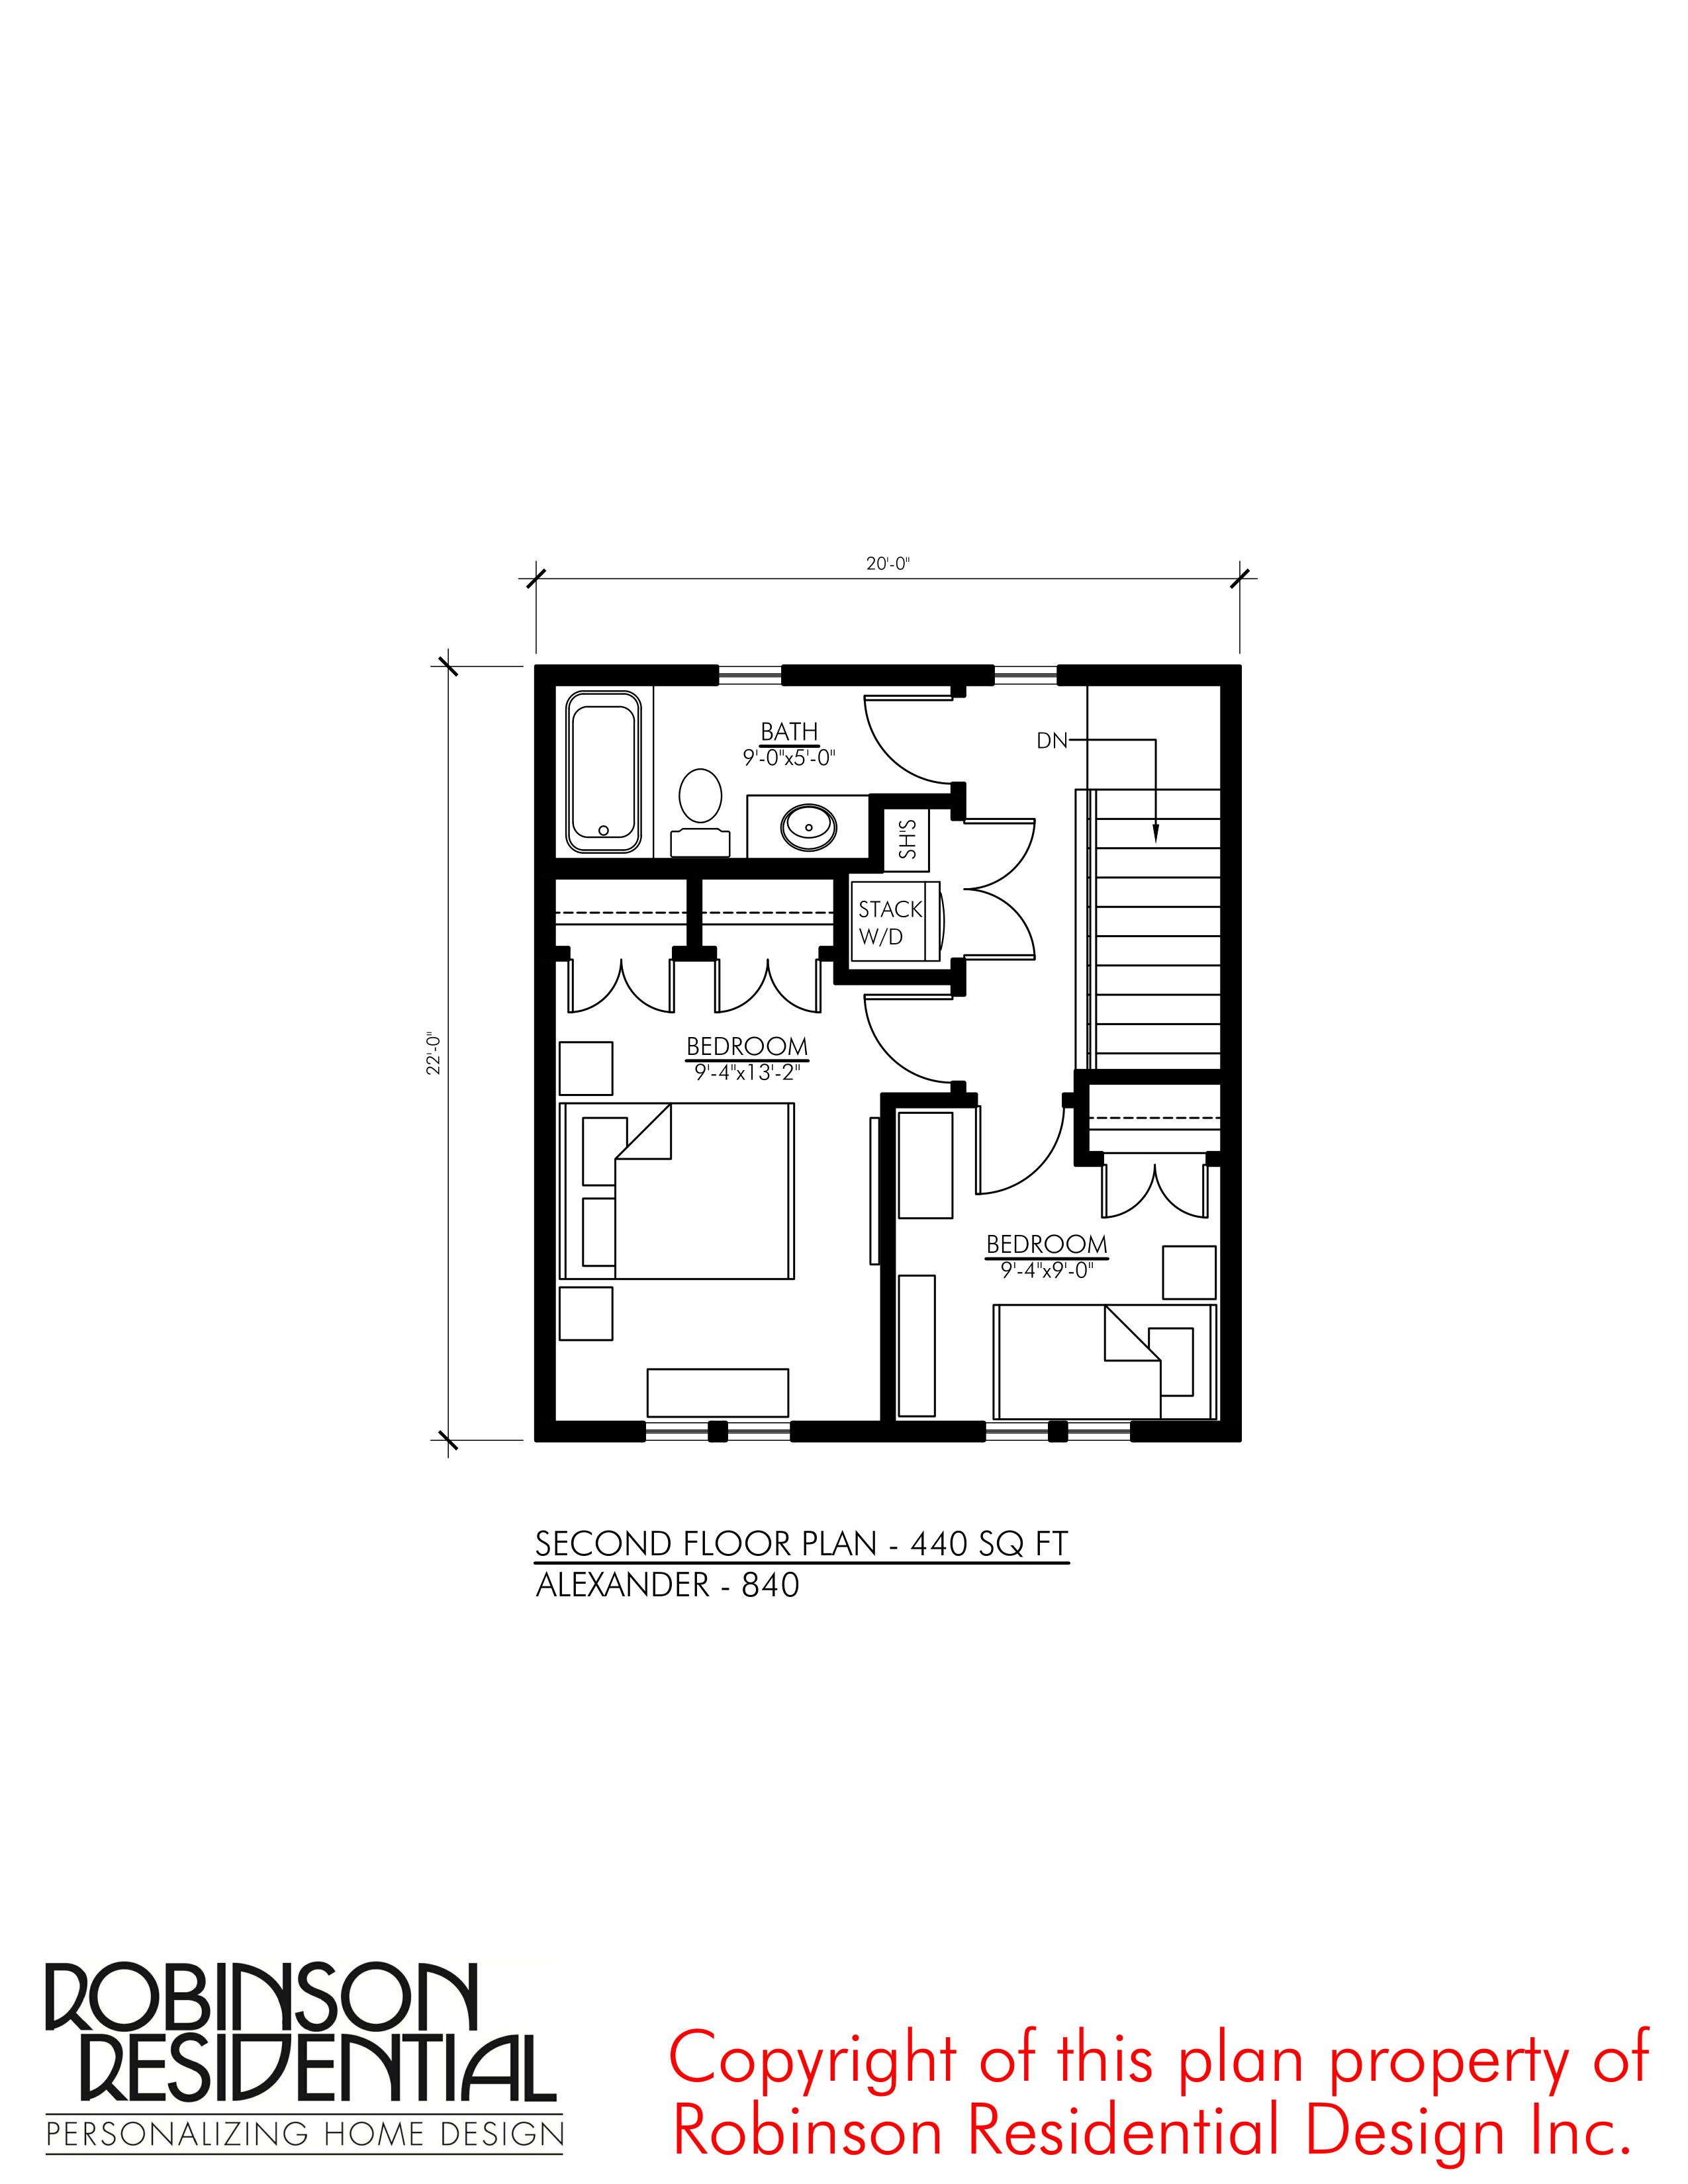 Home Plans and Designs Lovely Modern Farmhouse Alexander 840